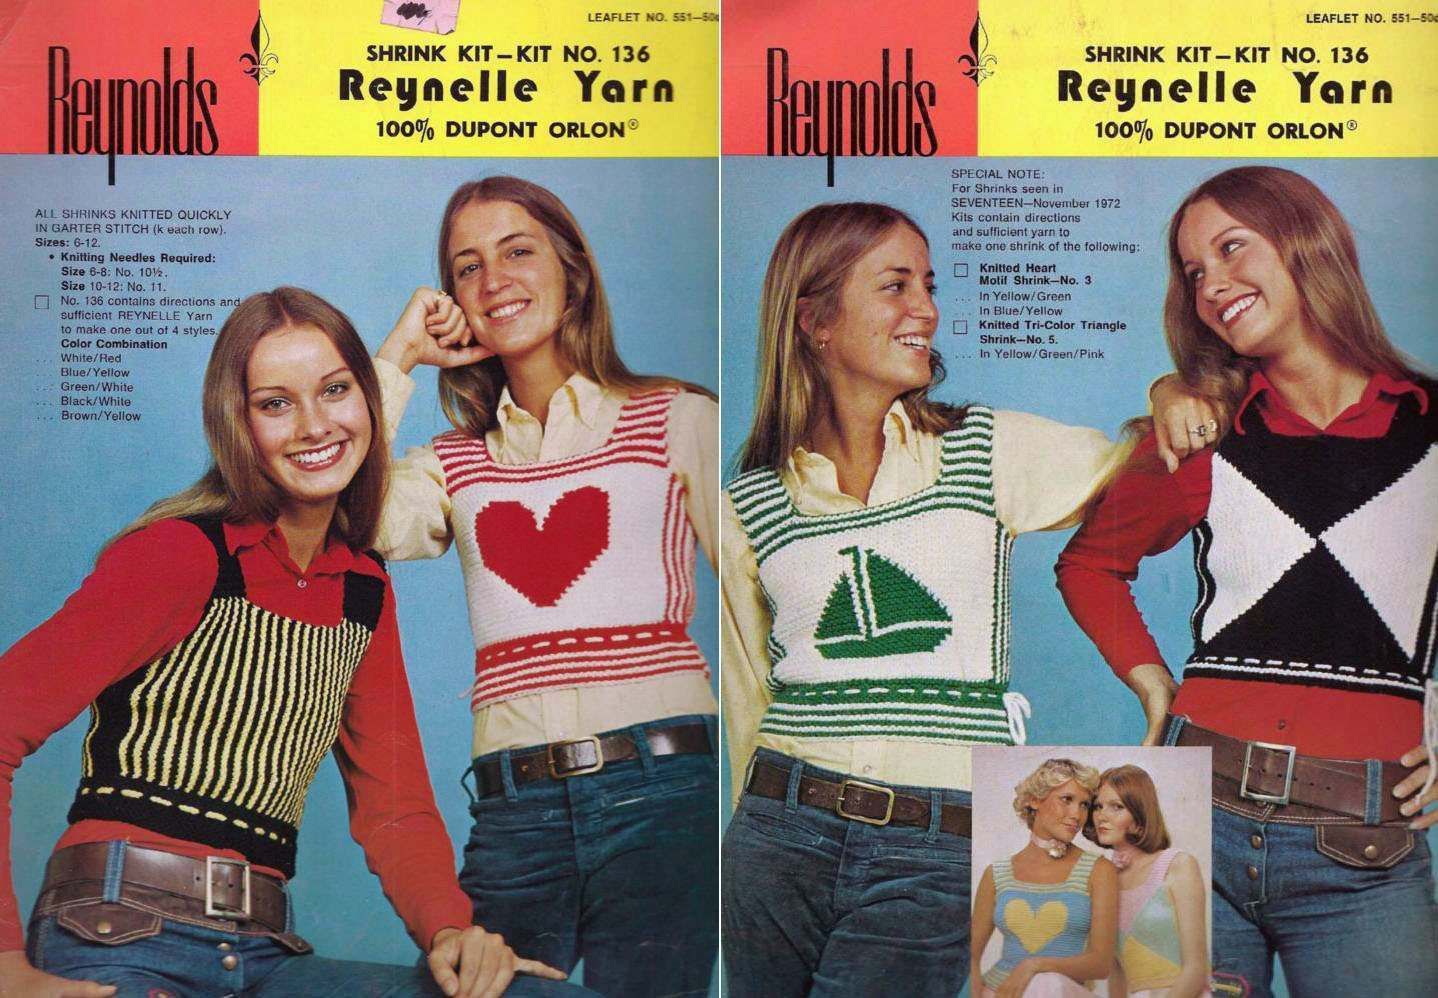 Bad Retro The Good, The Bad And The Tacky: 20 Fashion Trends Of The